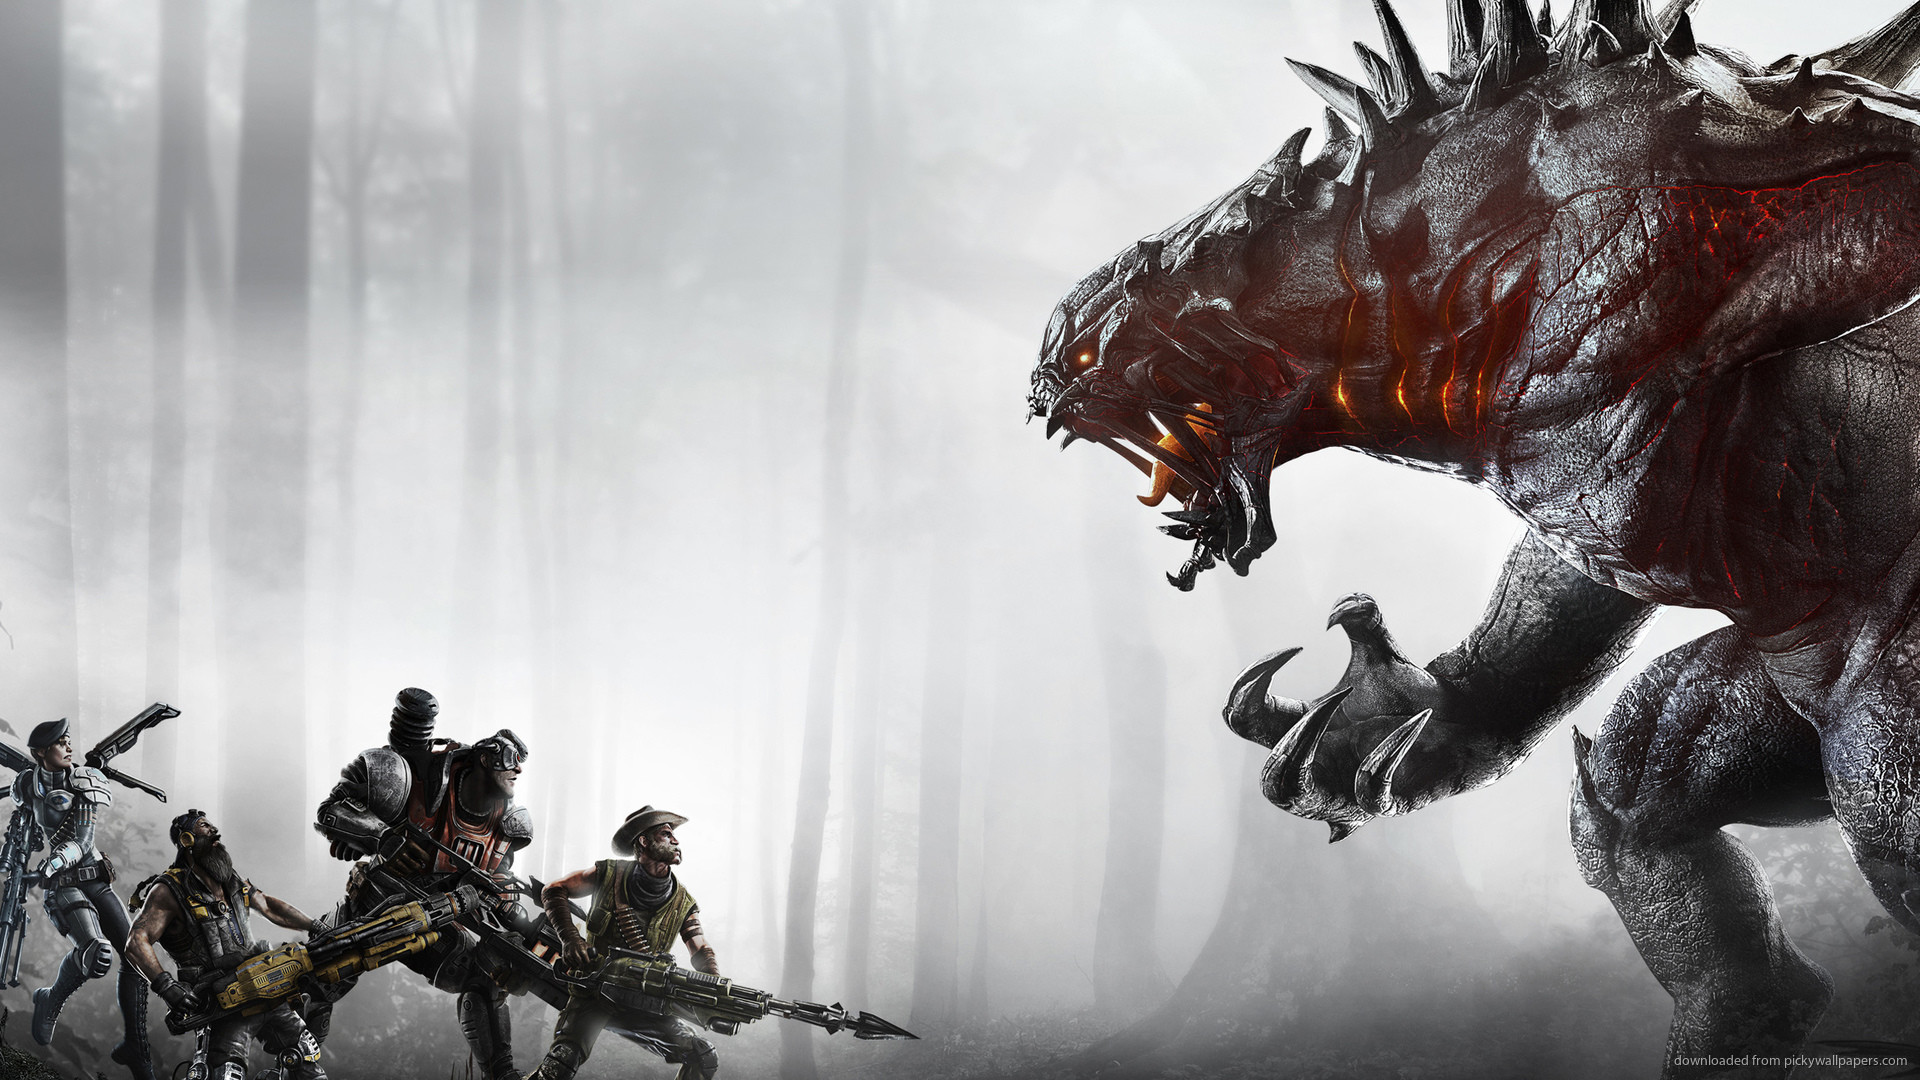 1920x1080 Evolve Video Game Wallpaper picture